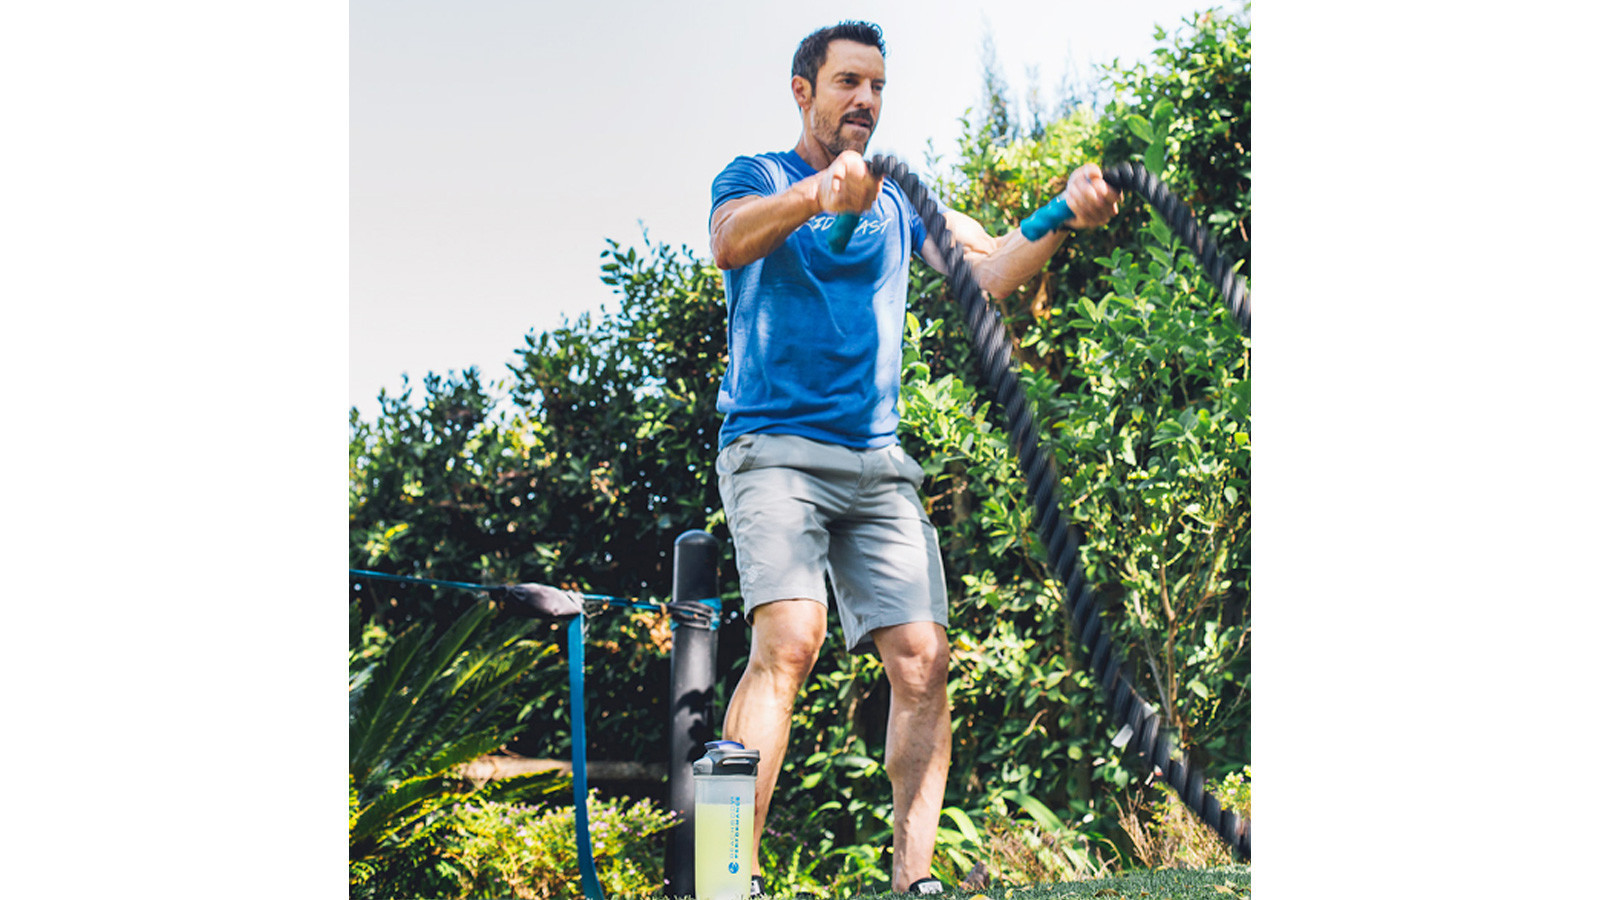 Tony Horton is the P90X creator and a master trainer.